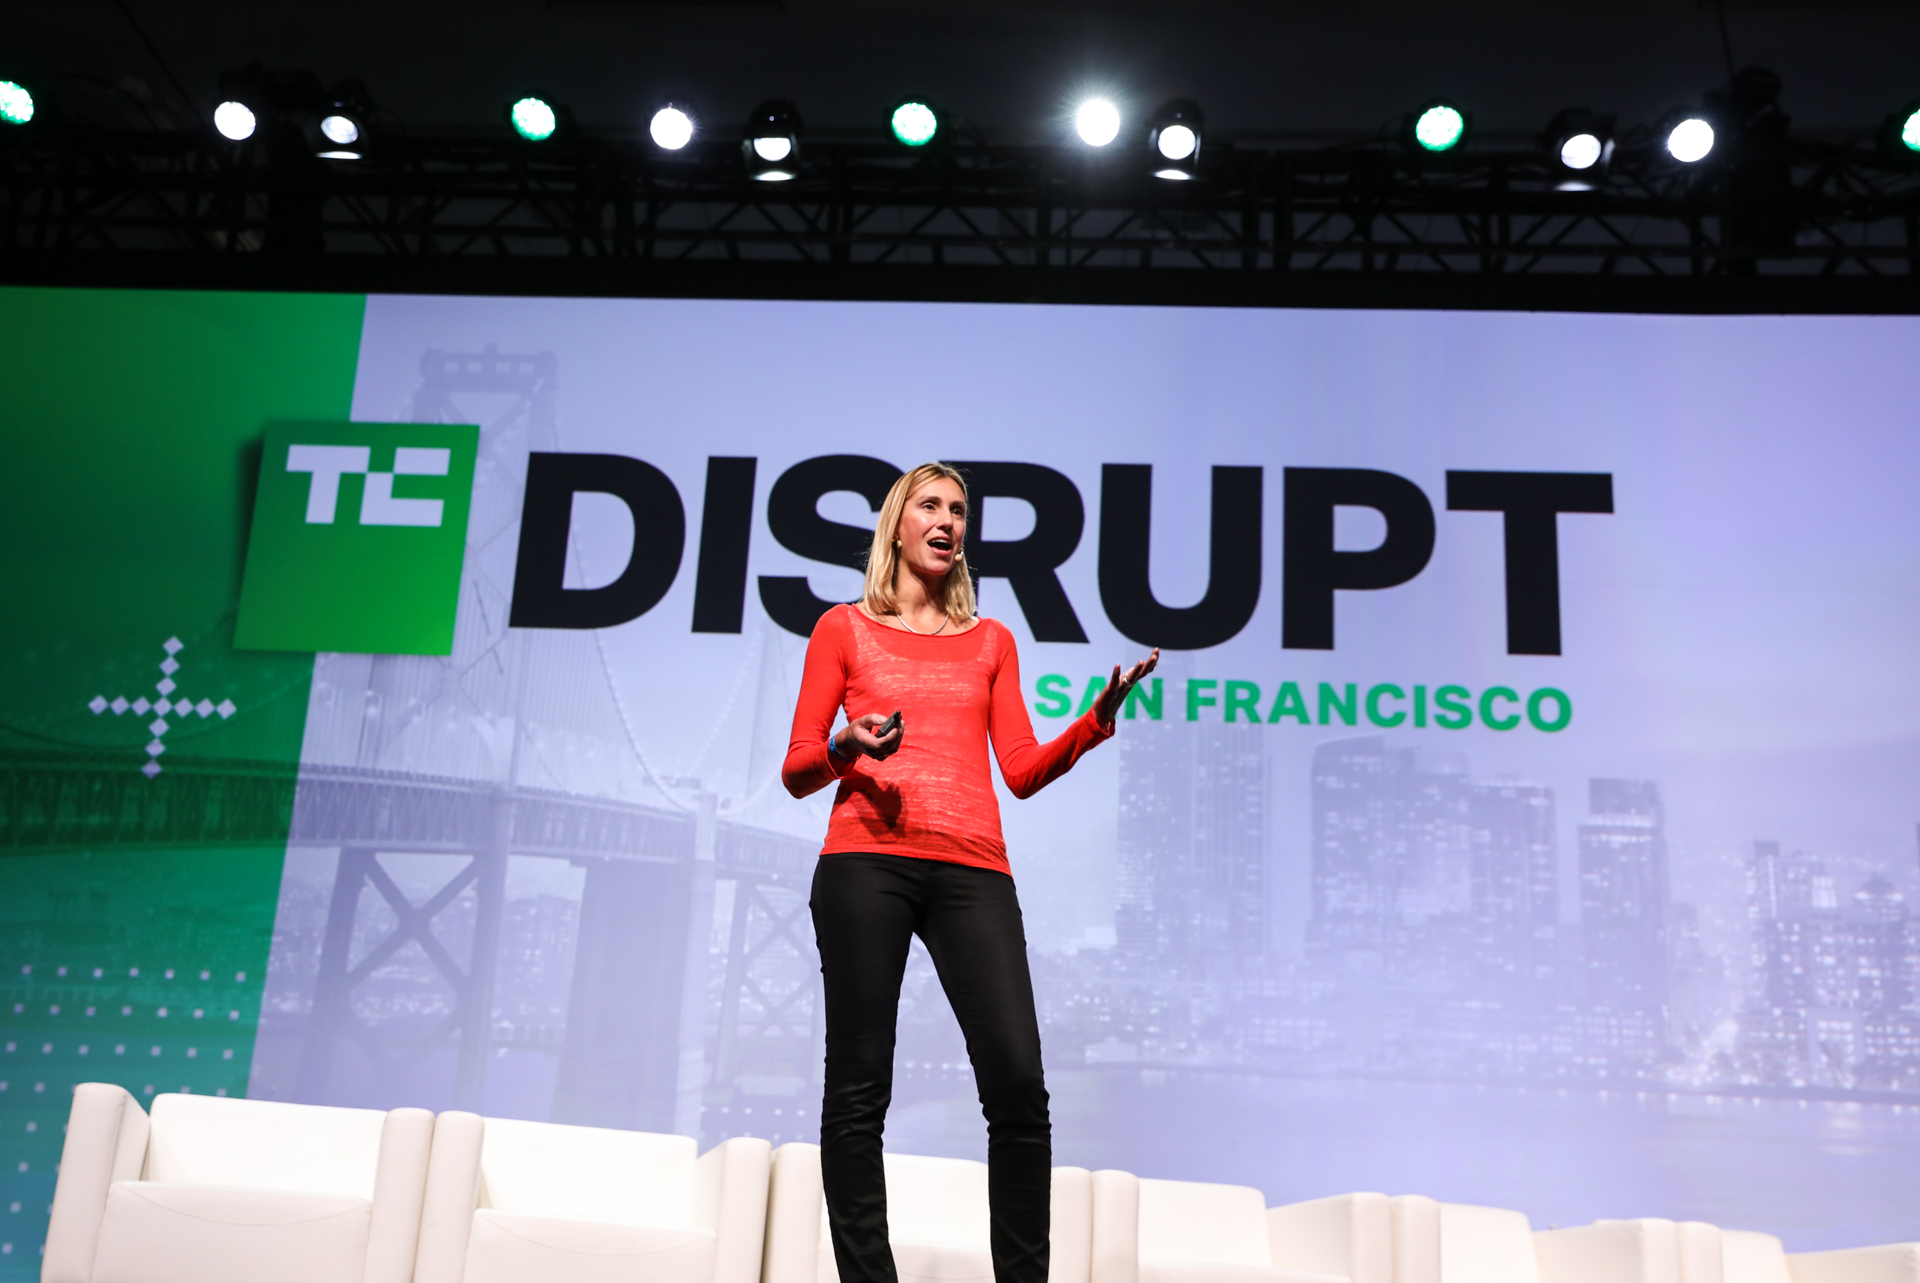 Sign up before March 11 and save $500 on Disrupt SF 2019 tix – TechCrunch 3